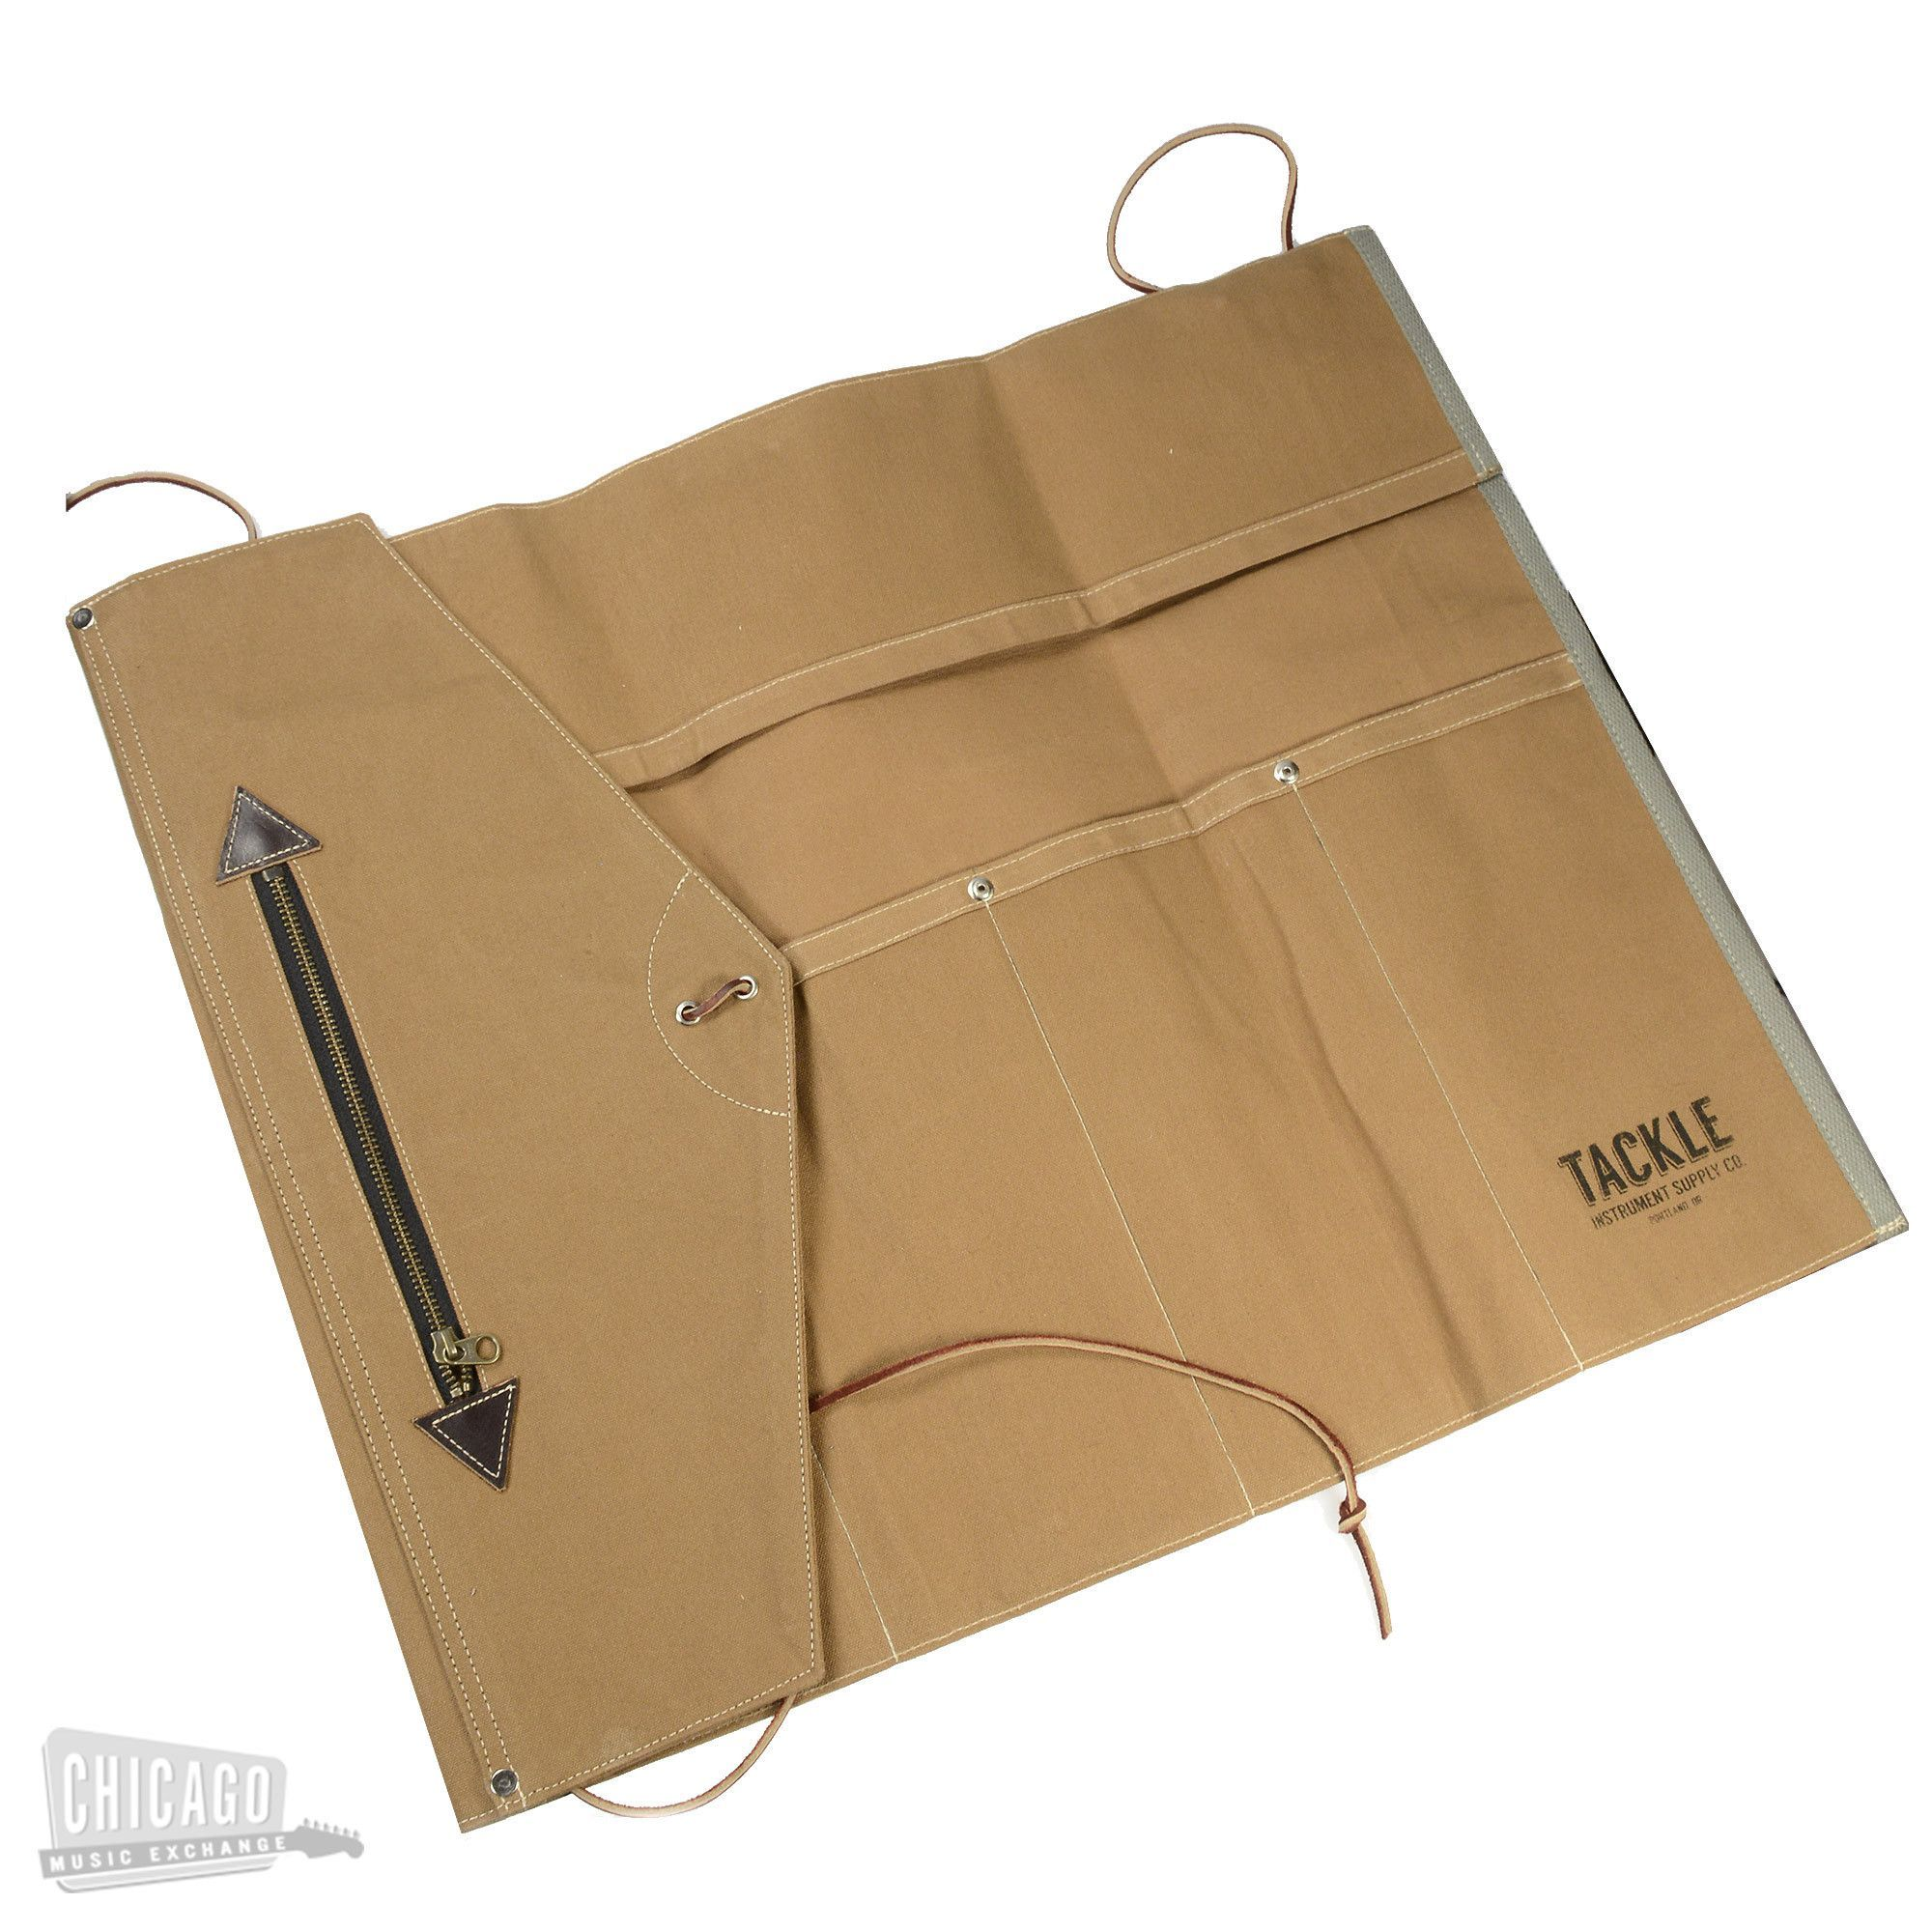 Tackle By Mcpherson Waxed Canvas Roll Up Stick Bag Brown Tackle